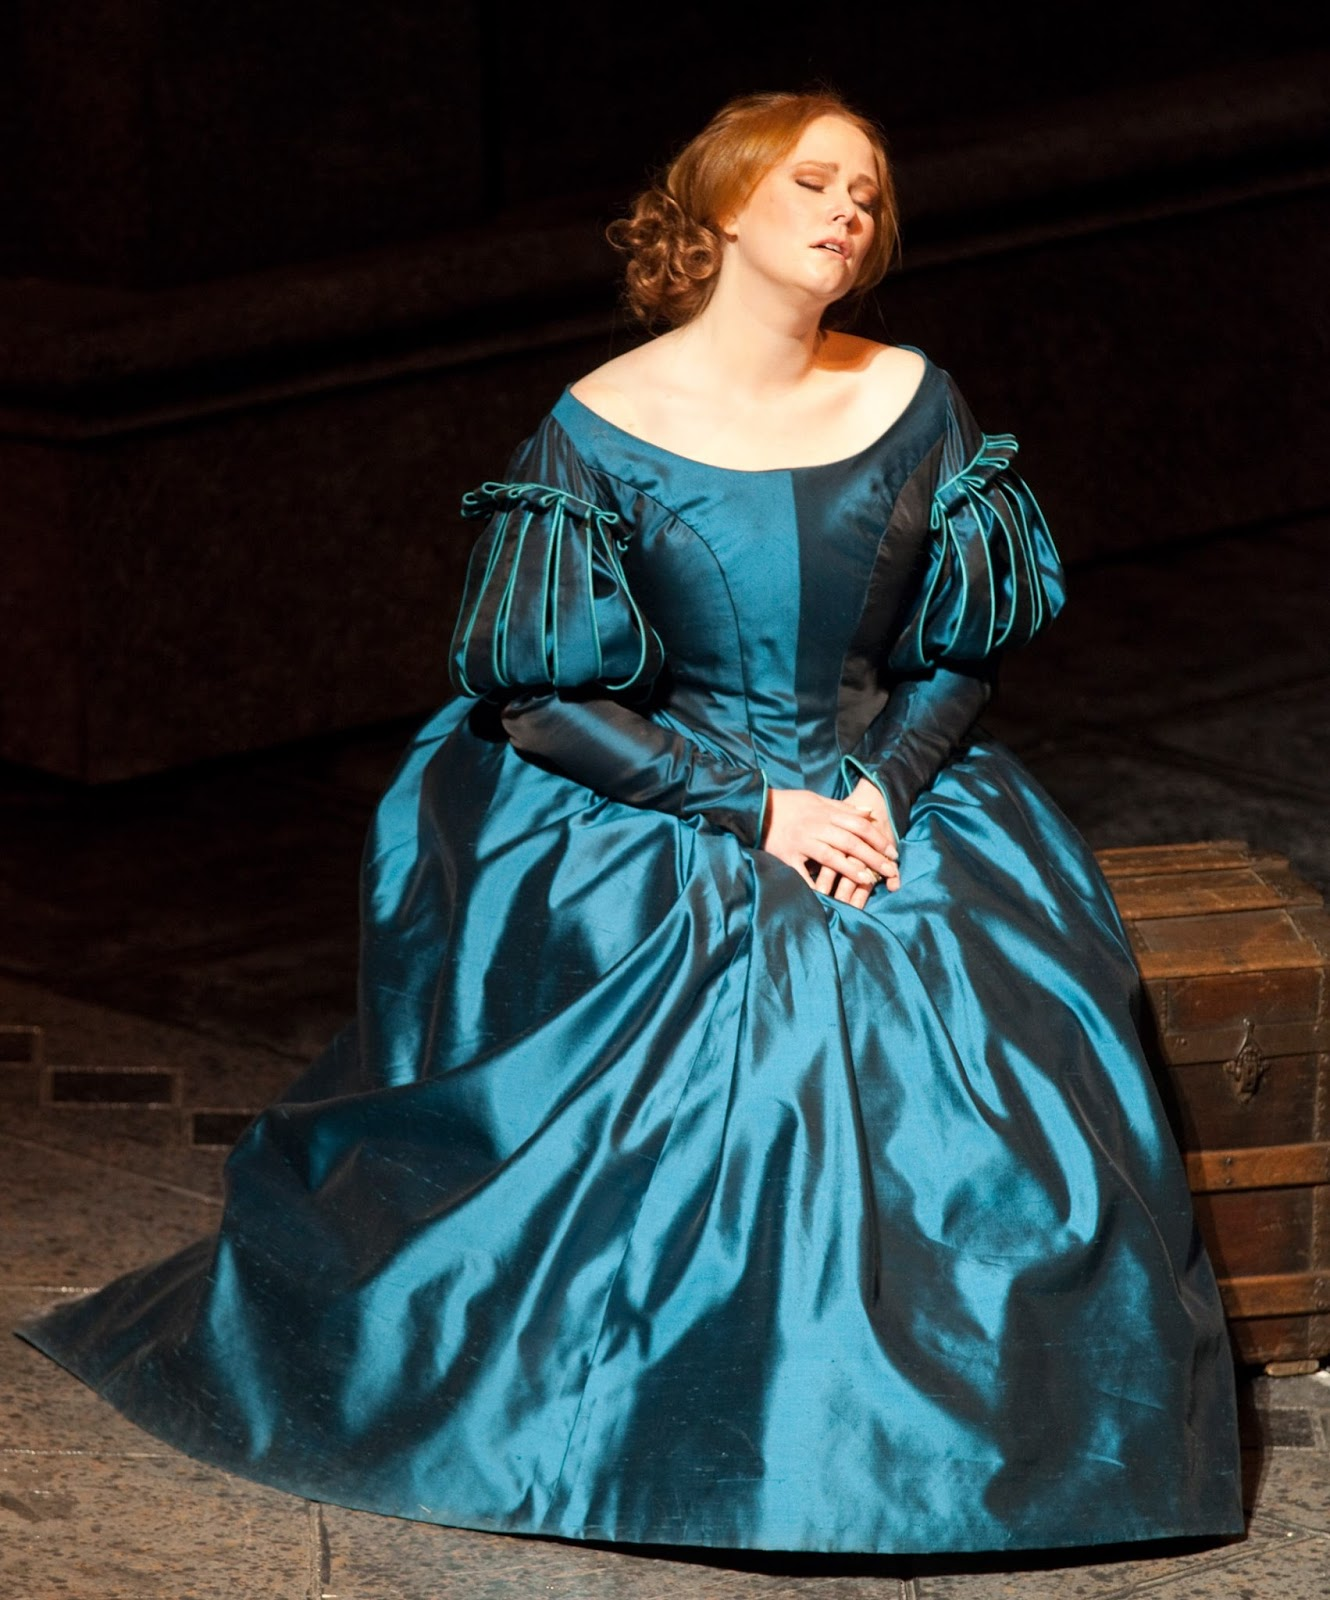 SINGER SPOTLIGHT: Soprano JESSICA PRATT in the title rôle of Gaetano Donizetti's LUCIA DI LAMMERMOOR at Teatro di San Carlo in Naples, Italy [Photo by Luciano Romano, © by Teatro di San Carlo]